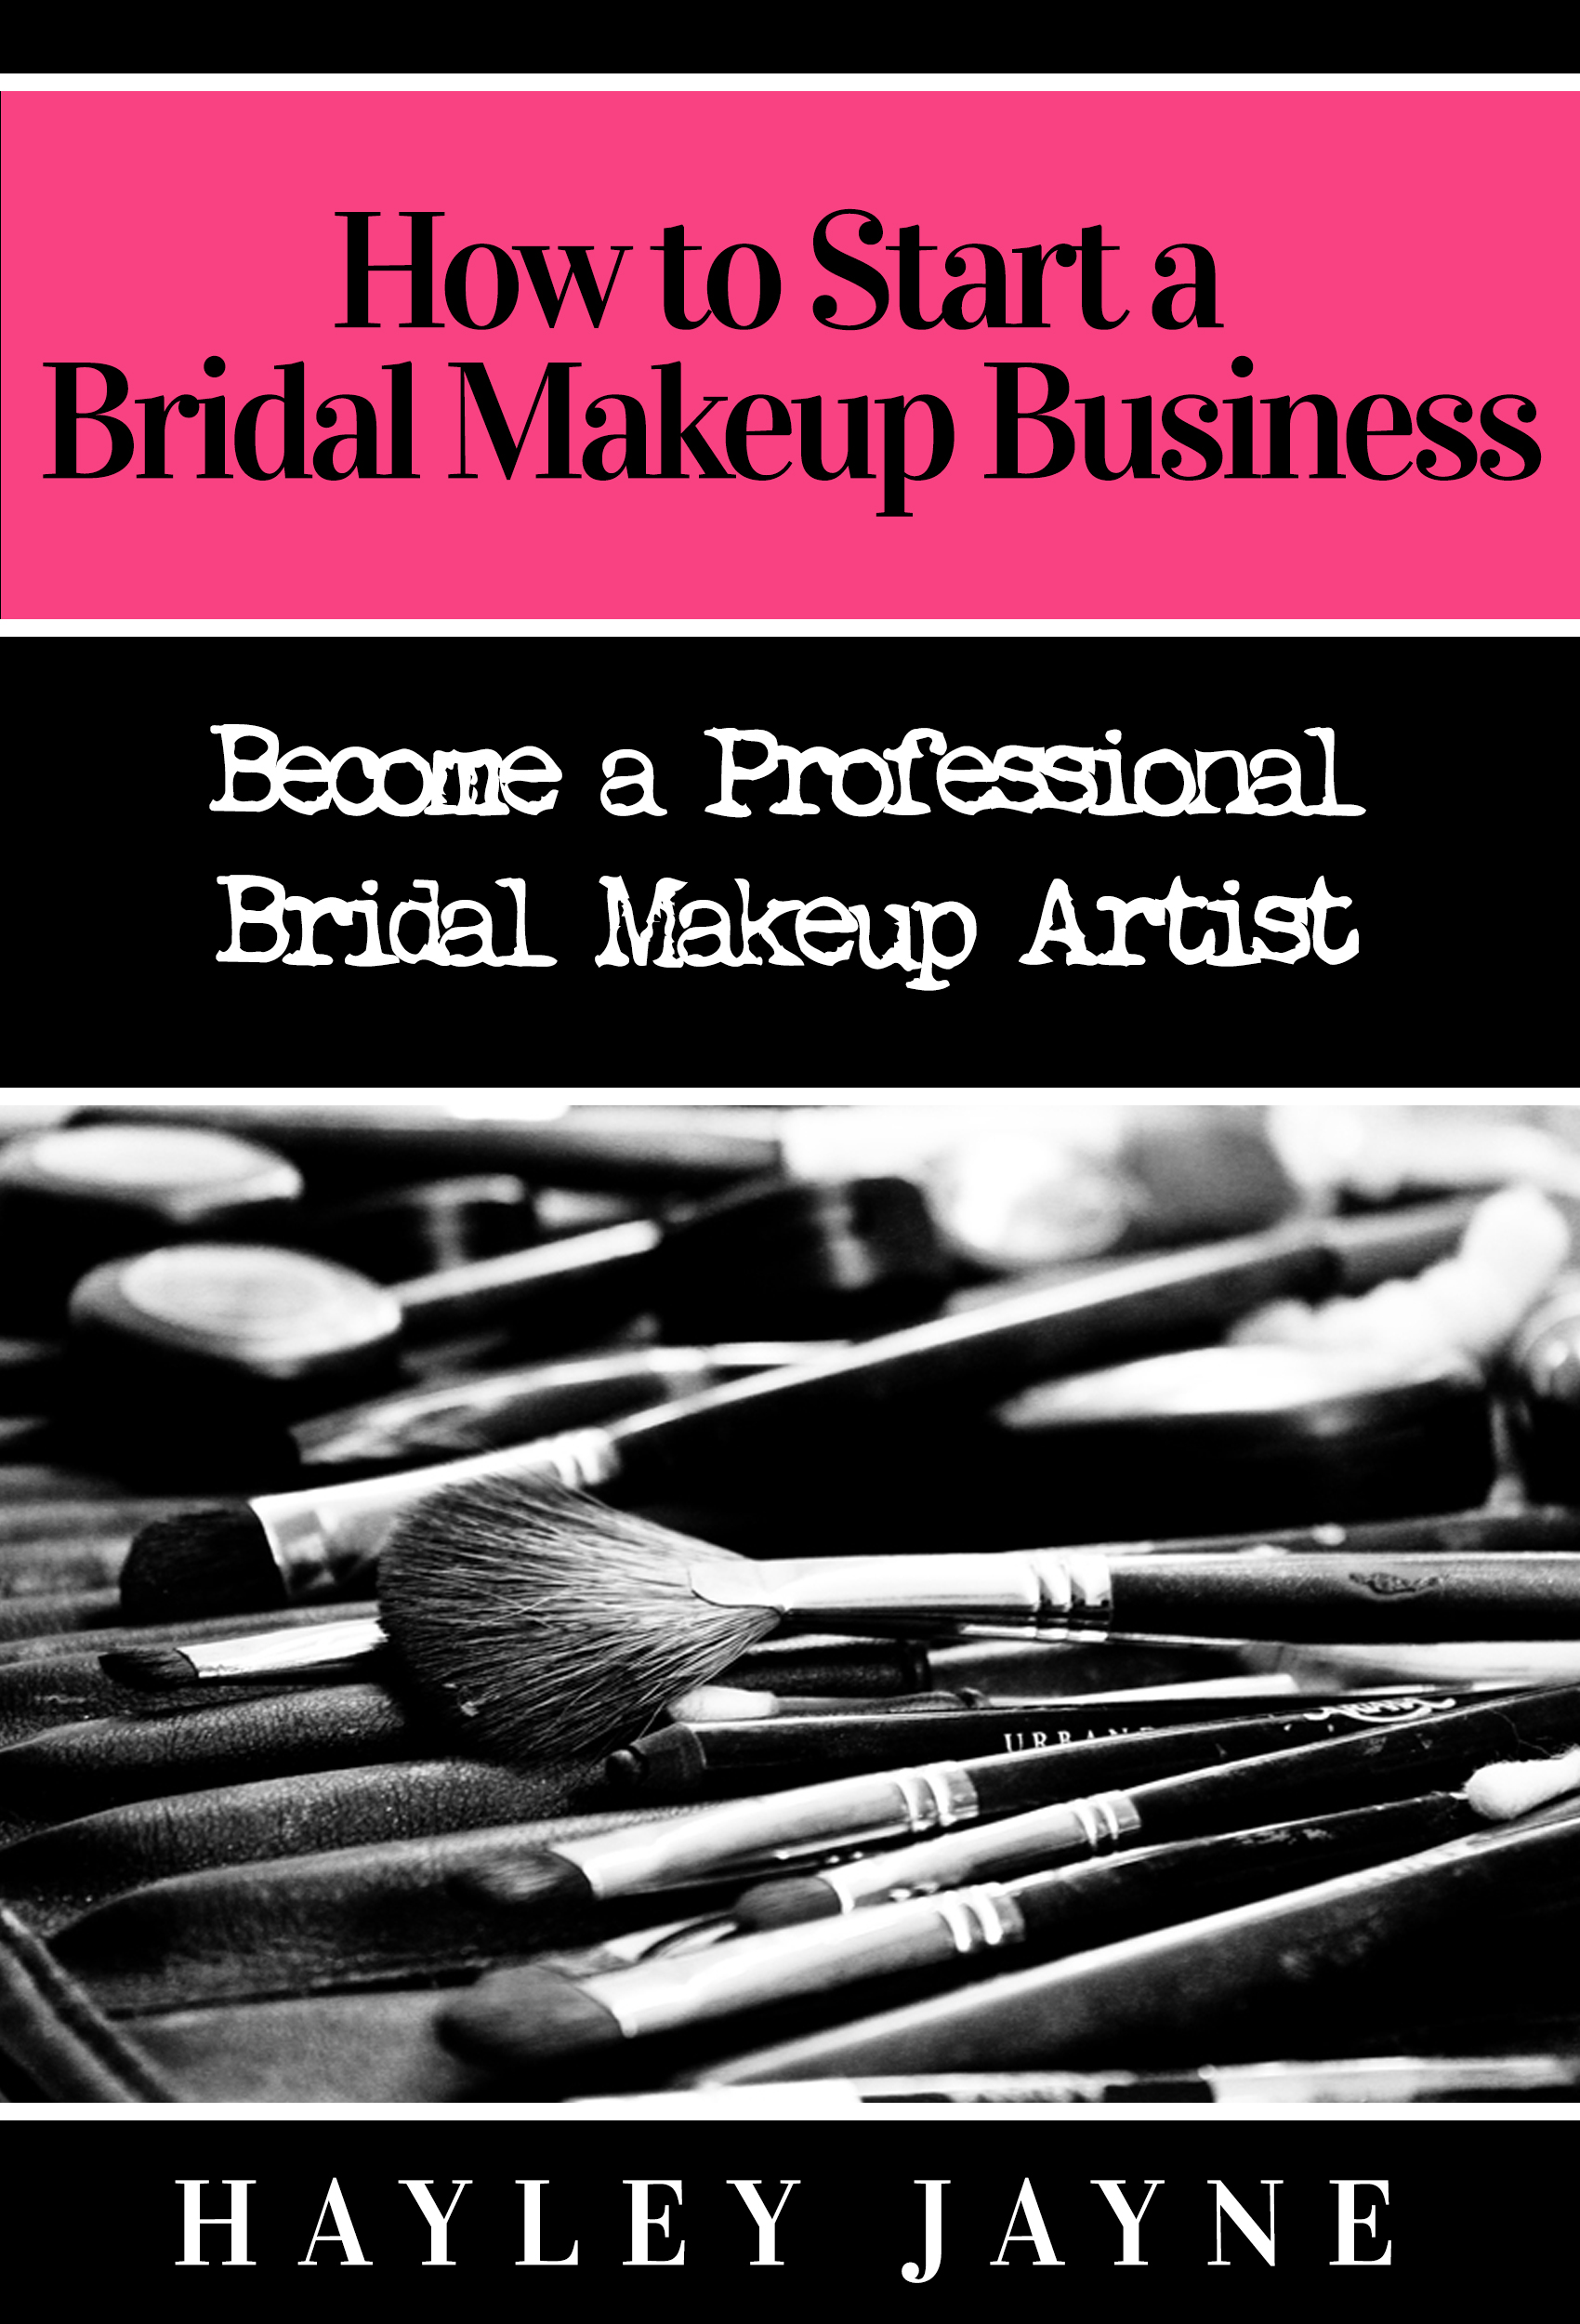 Starting Your Own Bridal Makeup Business : Become a Bridal Makeup Artist: Earn Extra Income - Disease ...